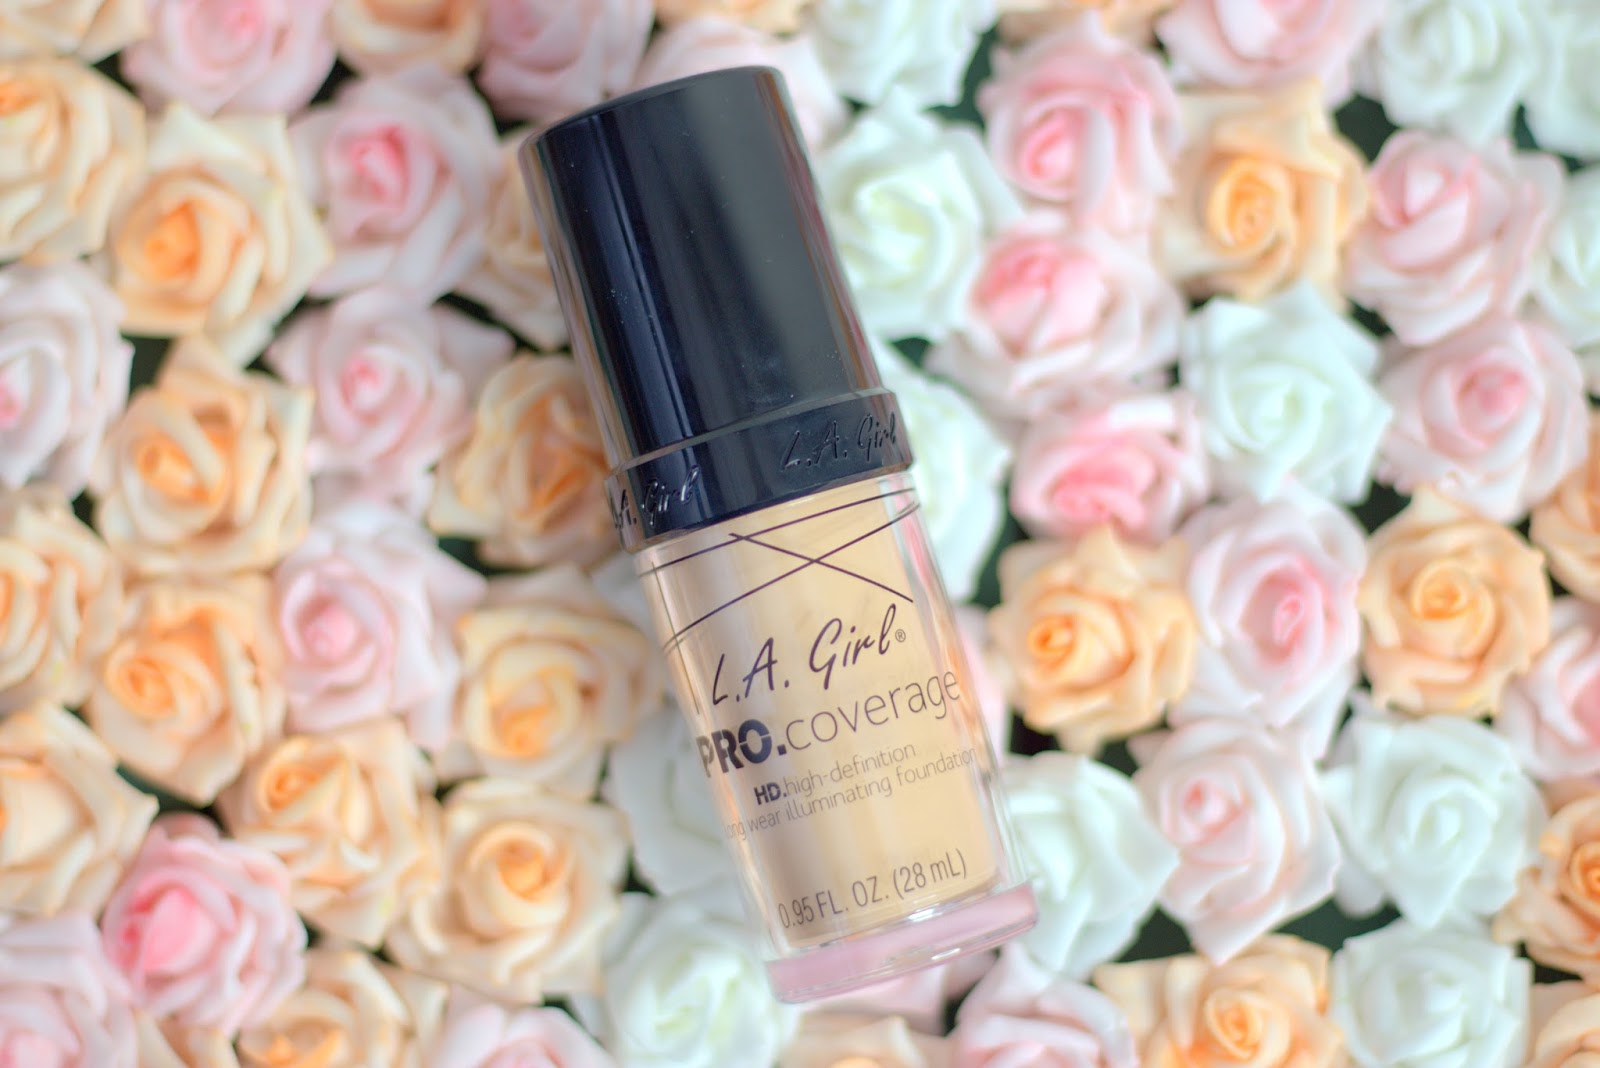 la girl pro foundation, makeup, beauty, beauty bay